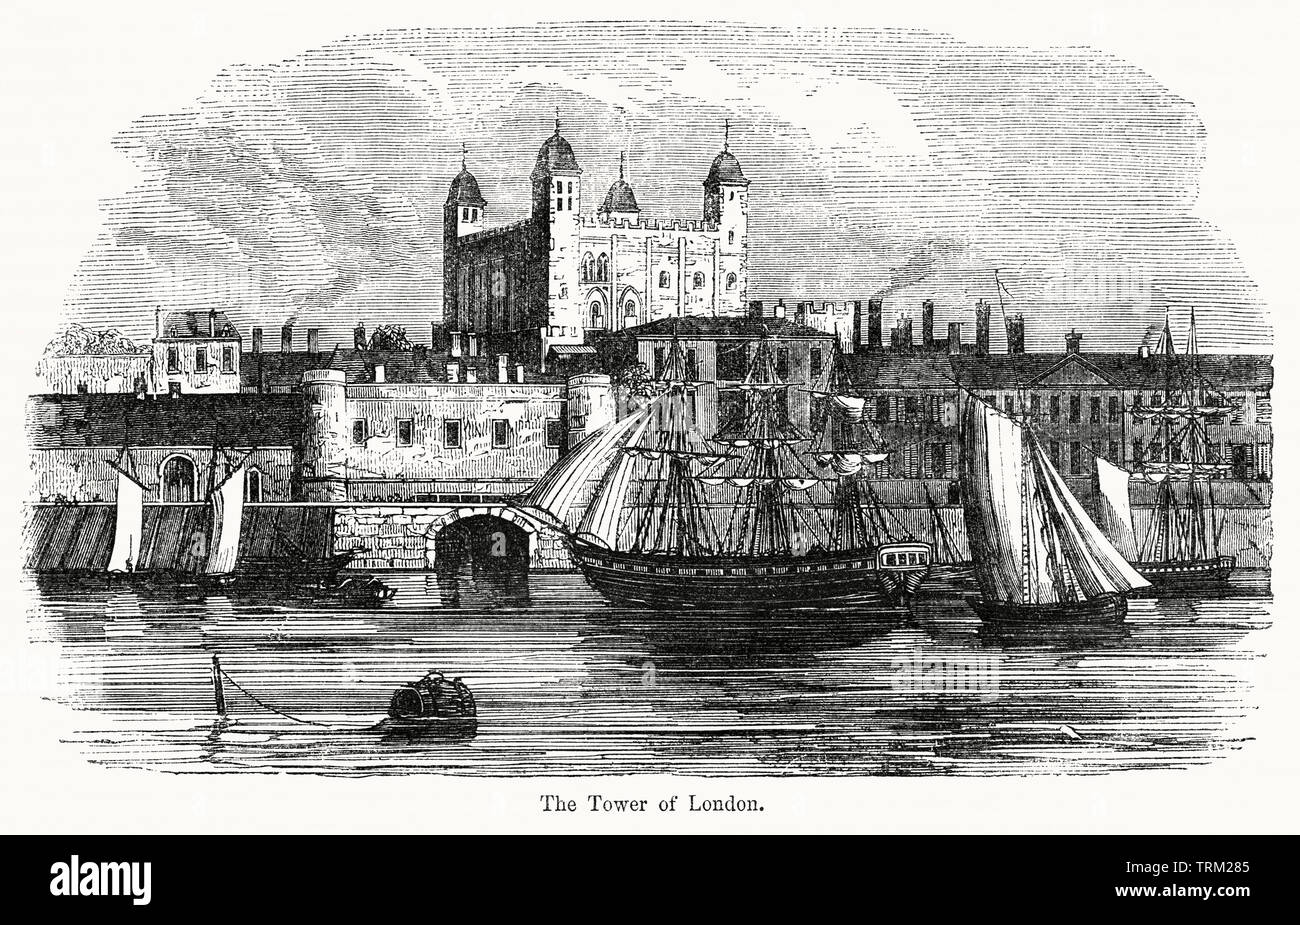 The Tower of London, Illustration from John Cassell's Illustrated History of England, Vol. I from the earliest period to the reign of Edward the Fourth, Cassell, Petter and Galpin, 1857 - Stock Image